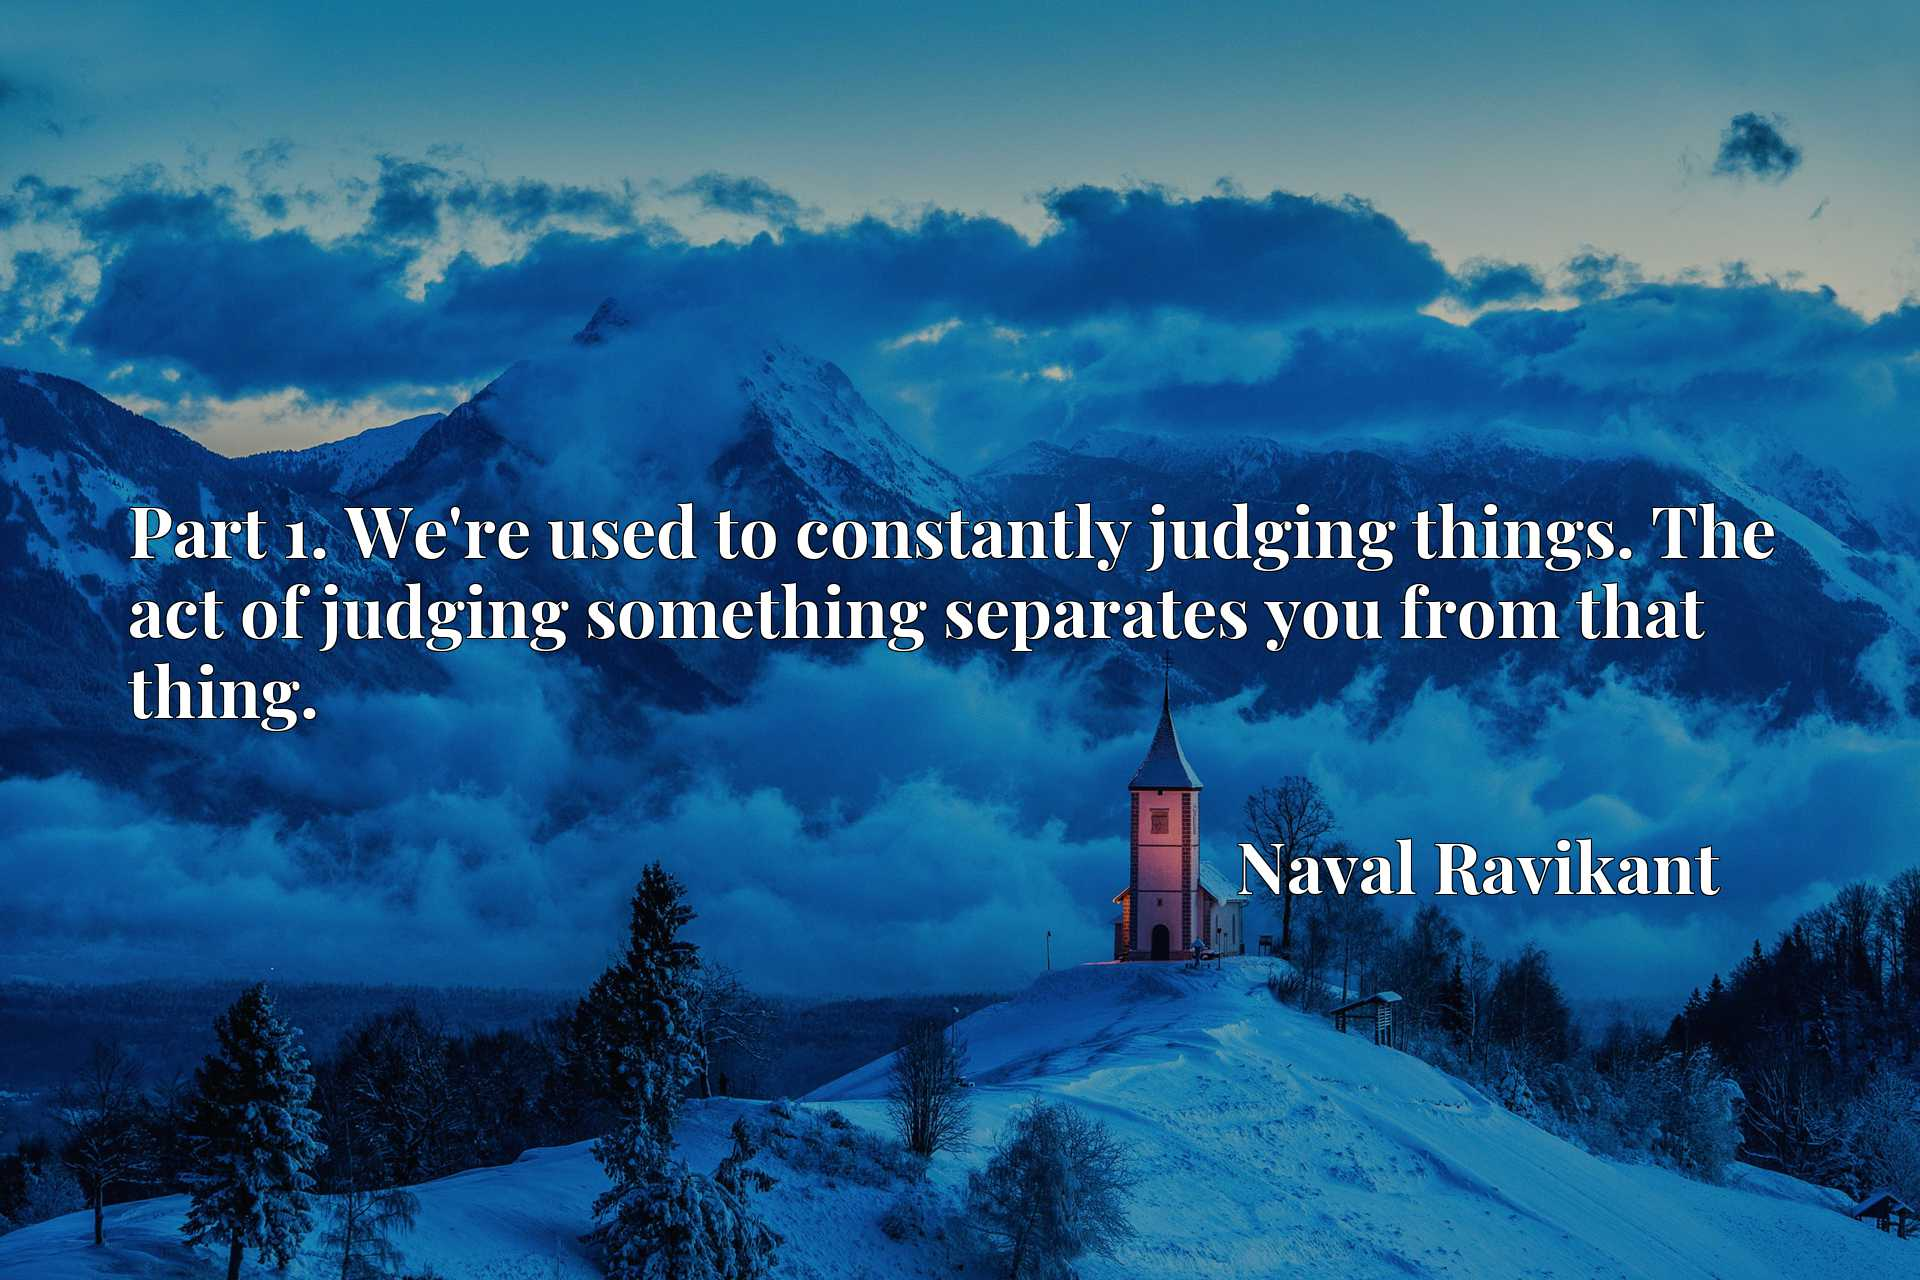 Part 1. We're used to constantly judging things. The act of judging something separates you from that thing.